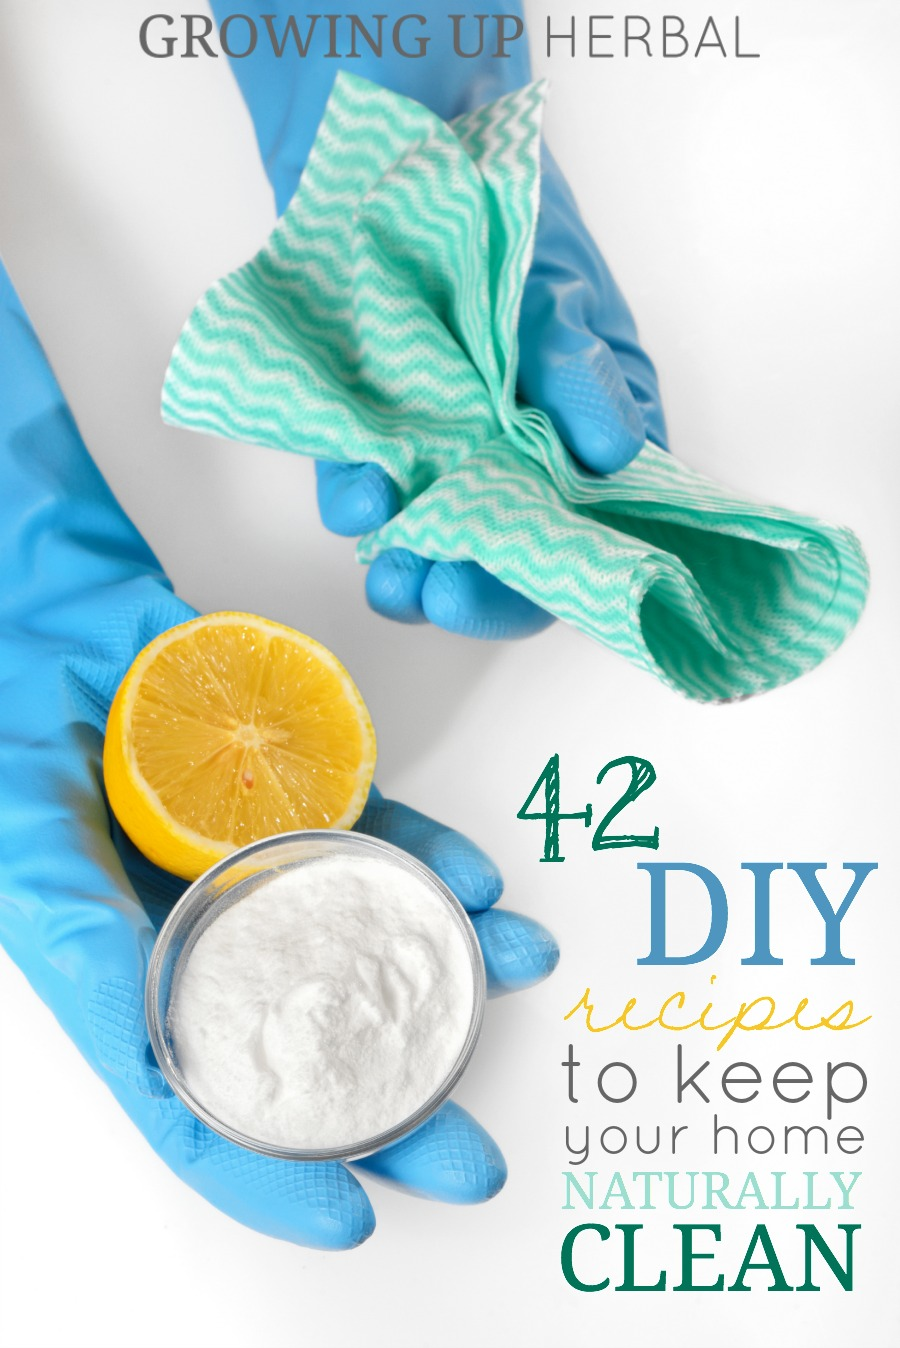 42 diy recipes to keep your home naturally clean - Diy tips home window cleaning ...